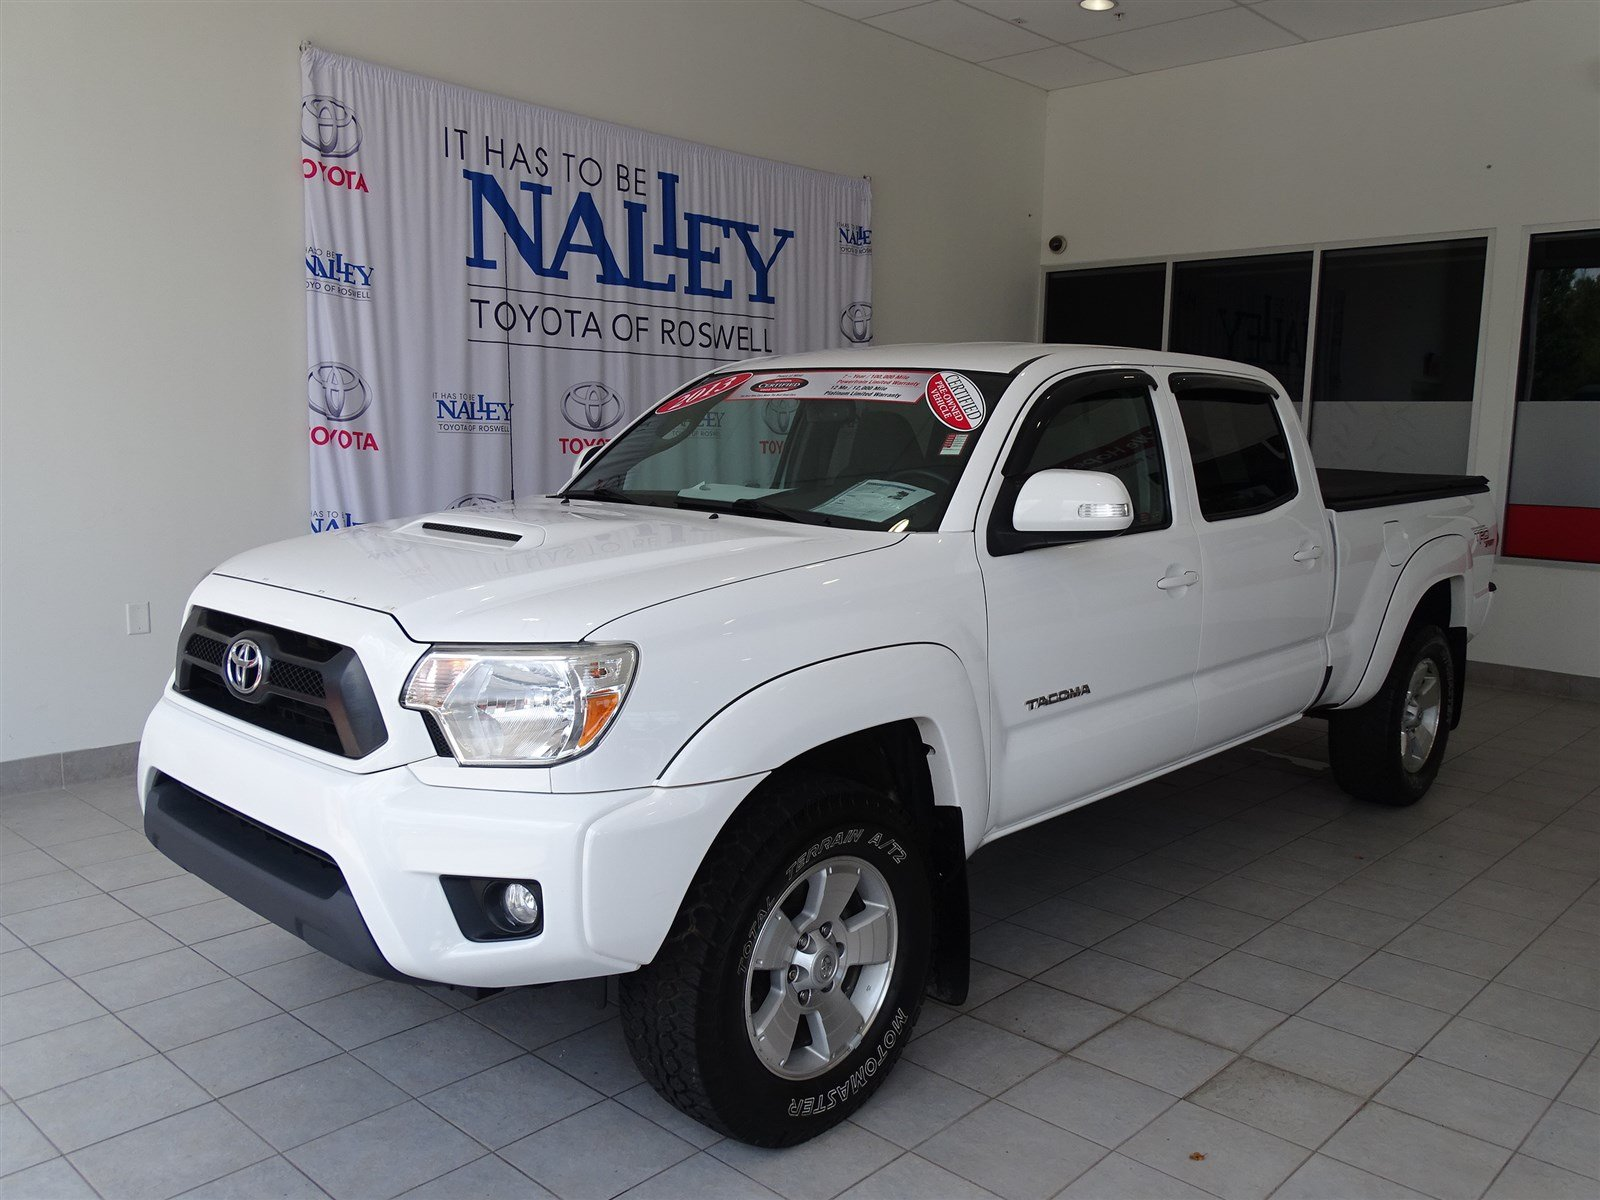 Superior Certified Pre Owned 2013 Toyota Tacoma TRD SPORT